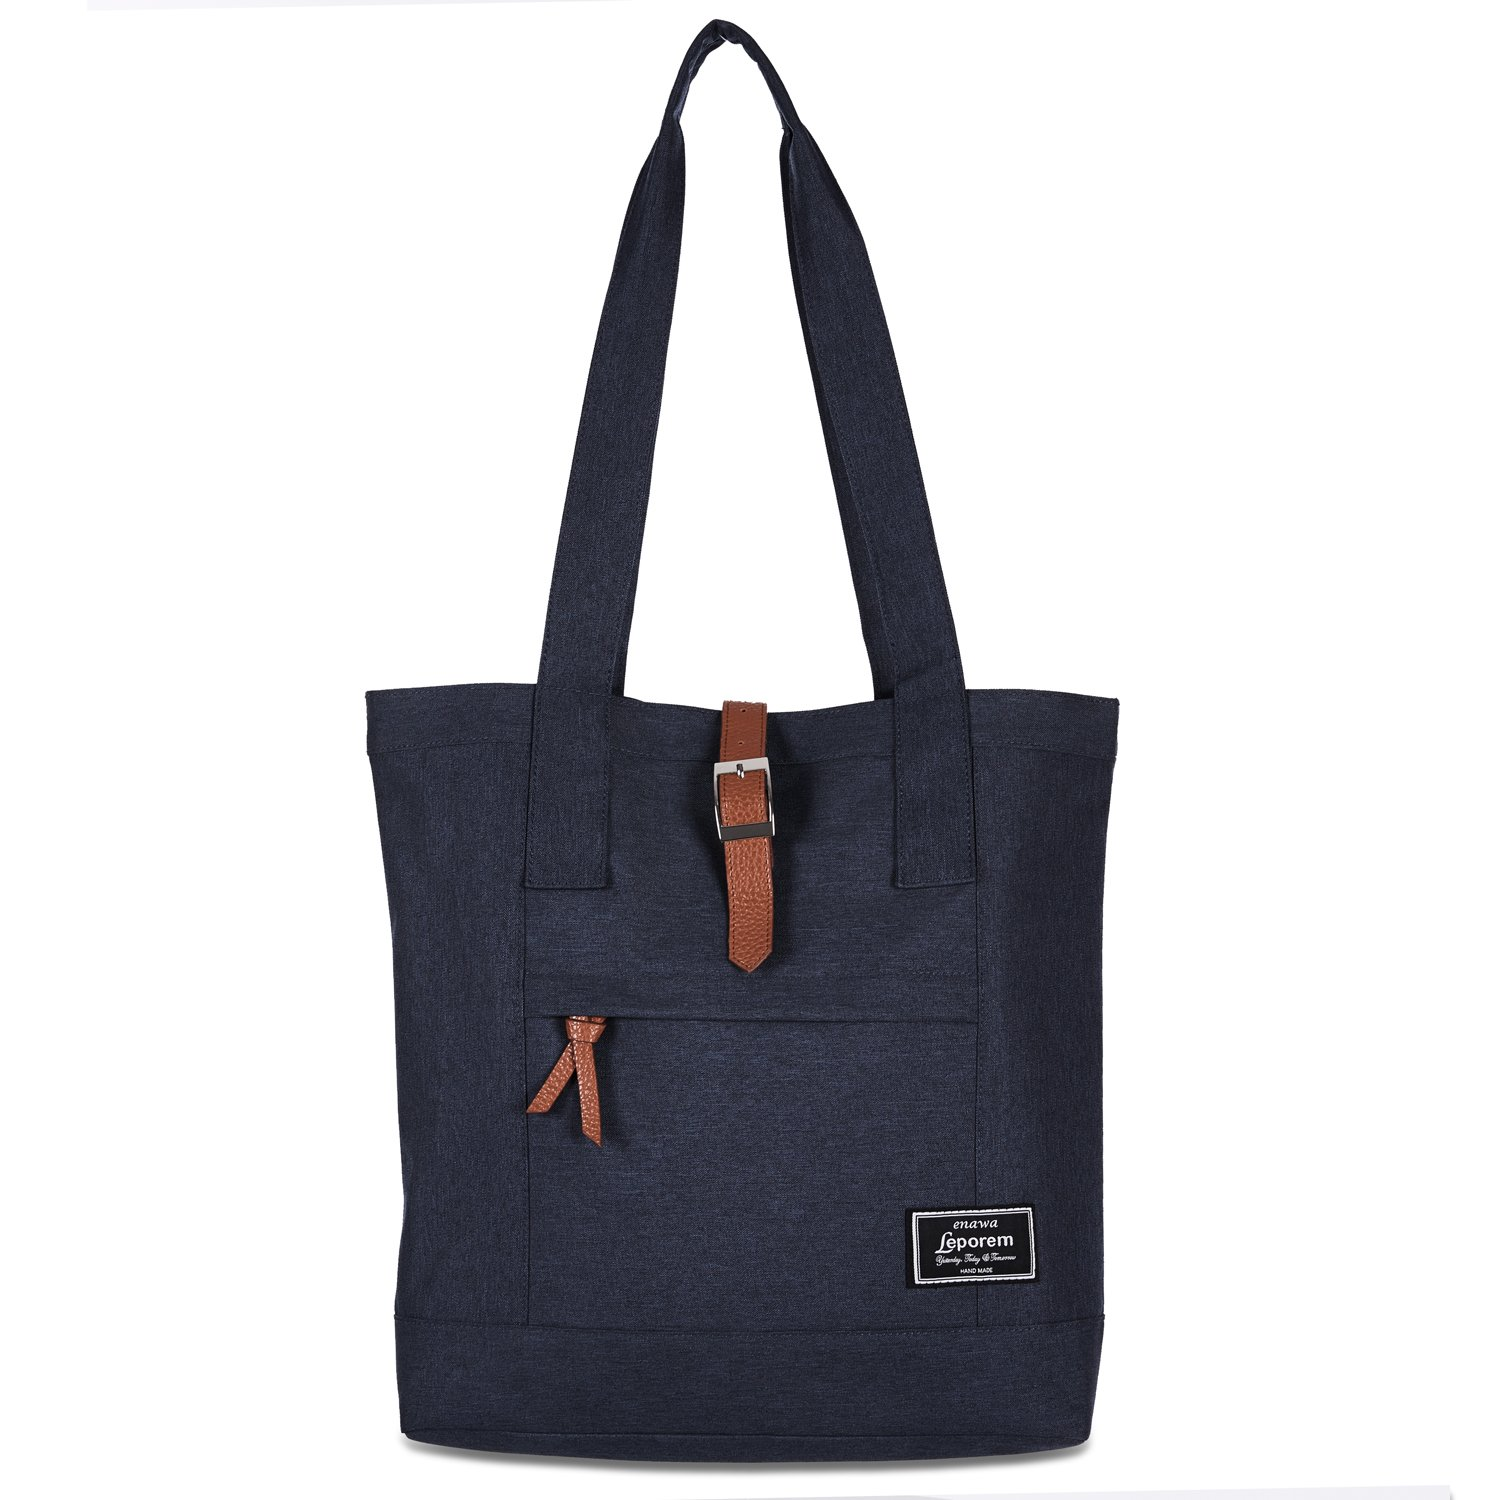 b6d192f23793 Heavy Duty Shoulder Market Tote Bag - Perfect for Shopping, Travel, School  Books - Fold over Fashionable Clutch - Cellphone, Digital Accessories ...